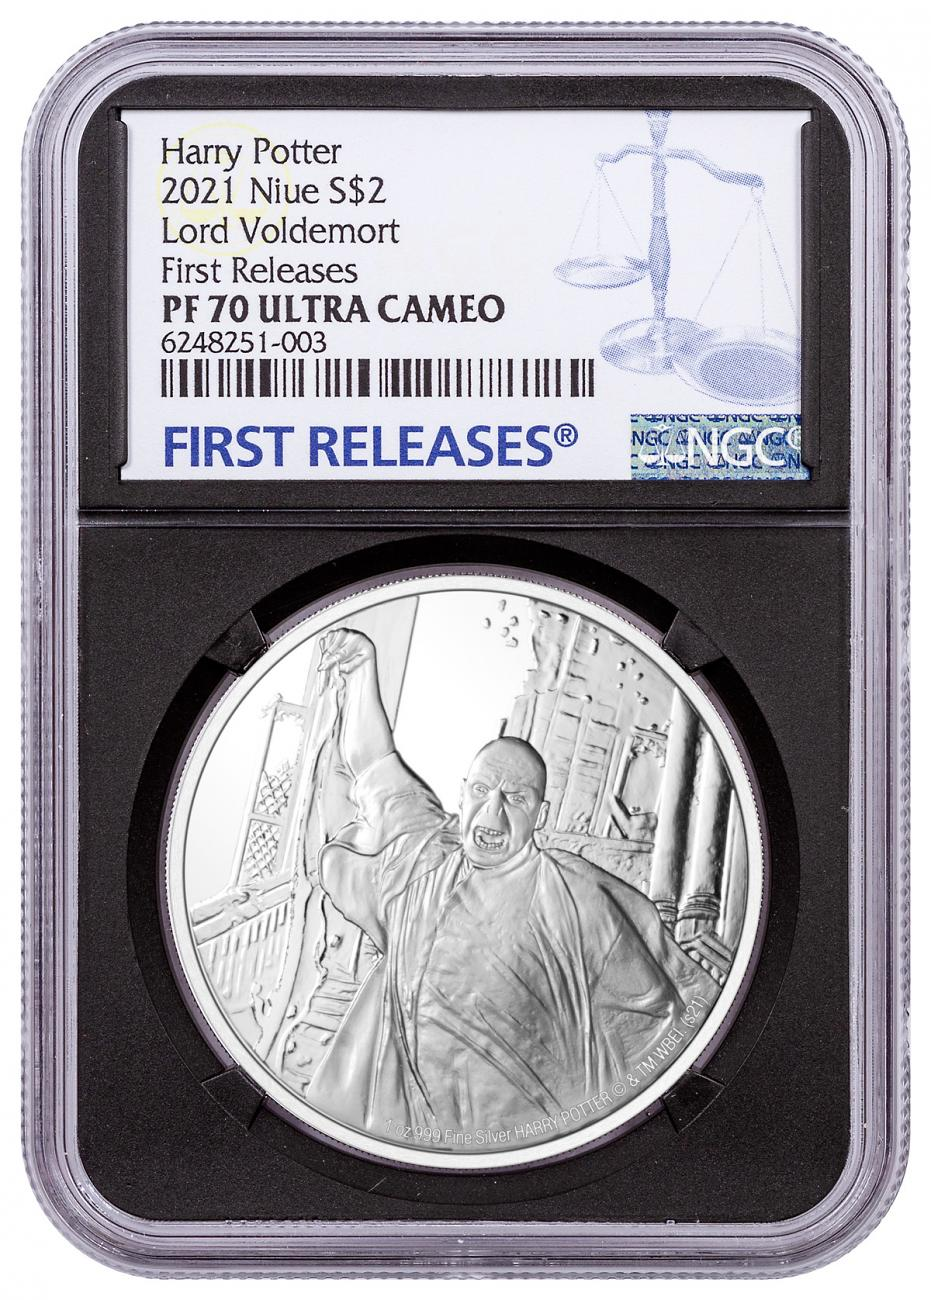 2021 Niue Harry Potter - Lord Voldemort 1 oz Silver Proof $2 Coin NGC PF70 UC FR With Original Mint Box Black Core Holder